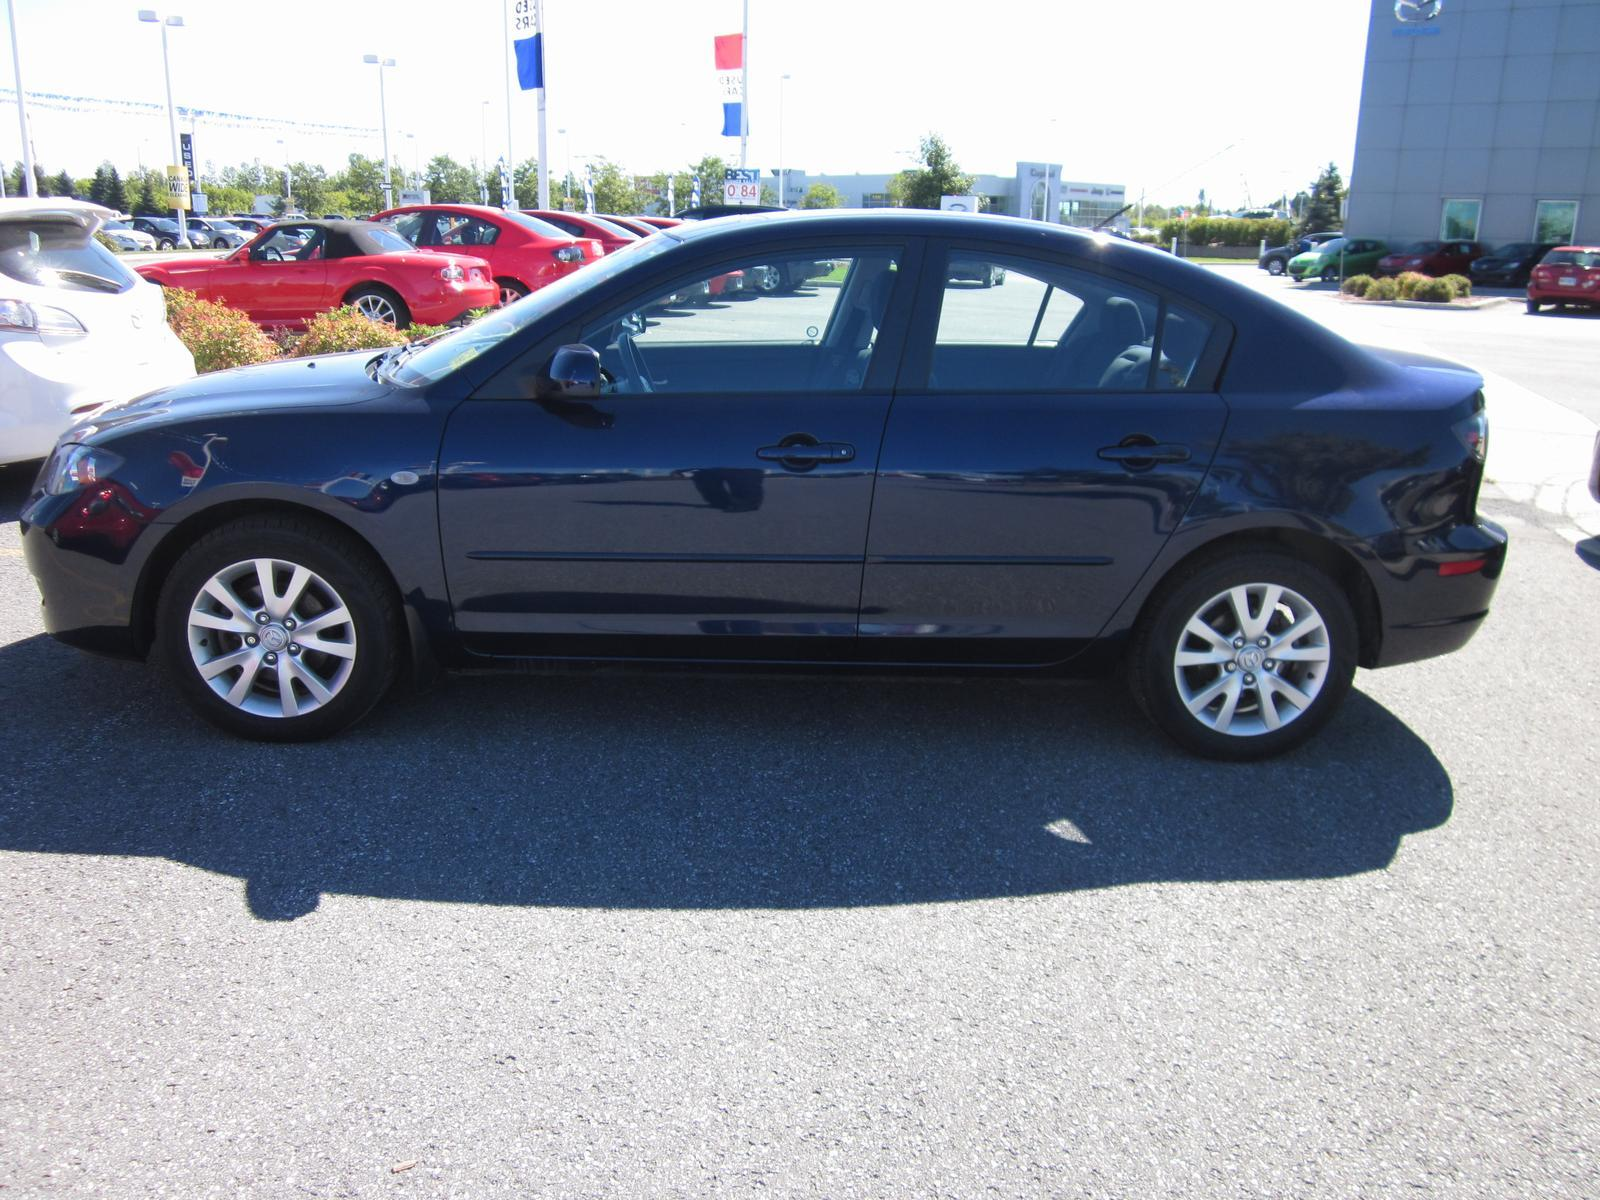 Used 2009 Mazda 3 GS in Kanata hathback for sale free image editor